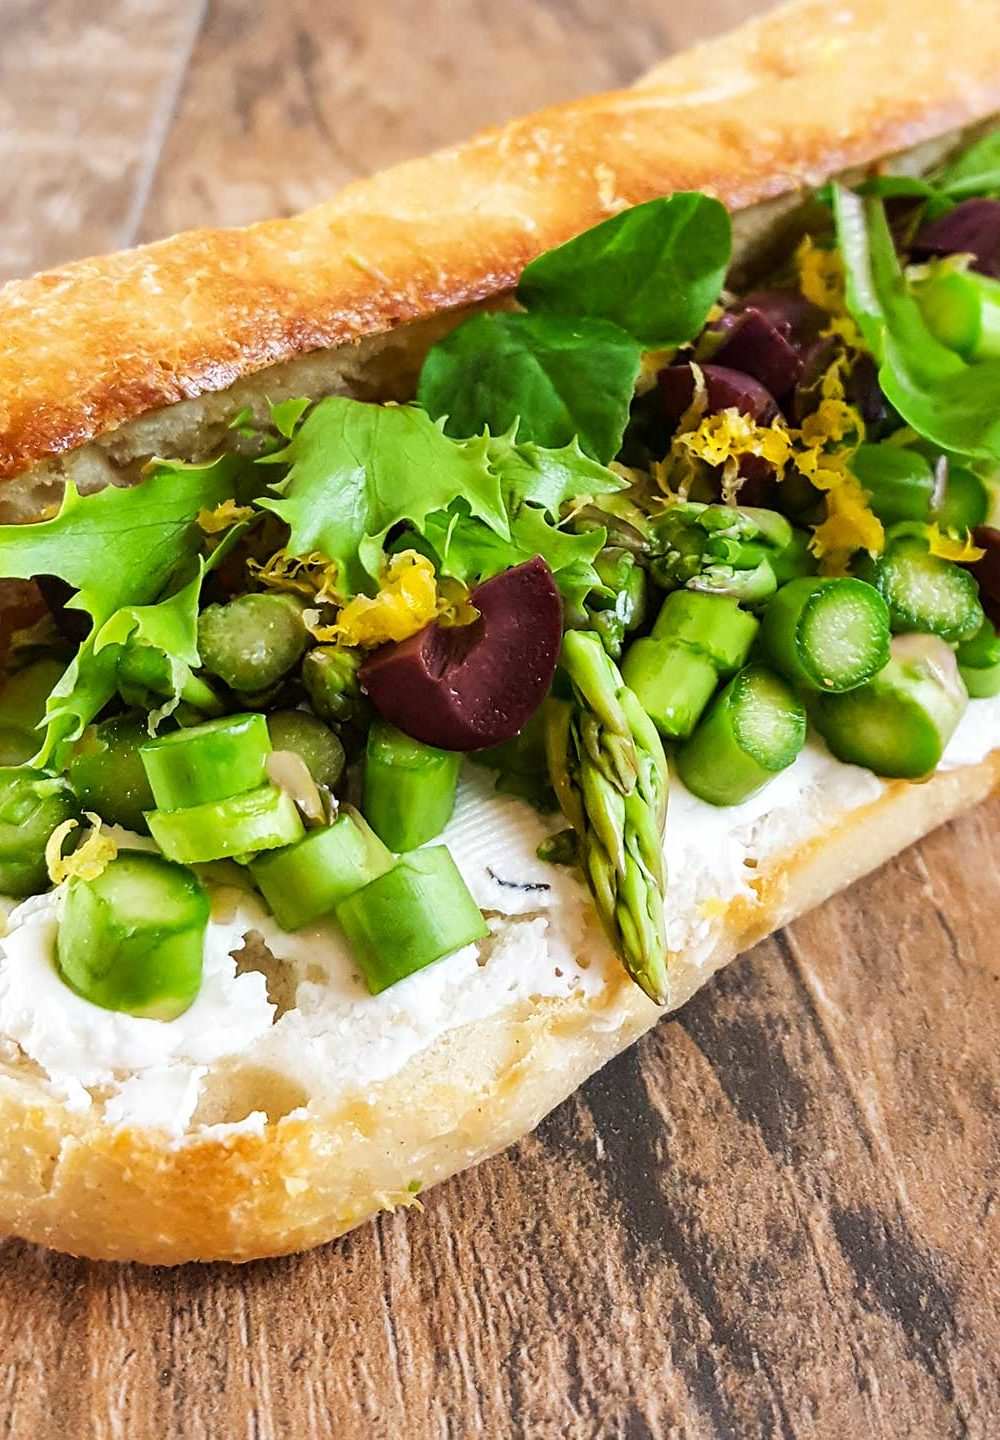 Baguette roll with sliced asapragus, goat cheese, olives, and lettuce